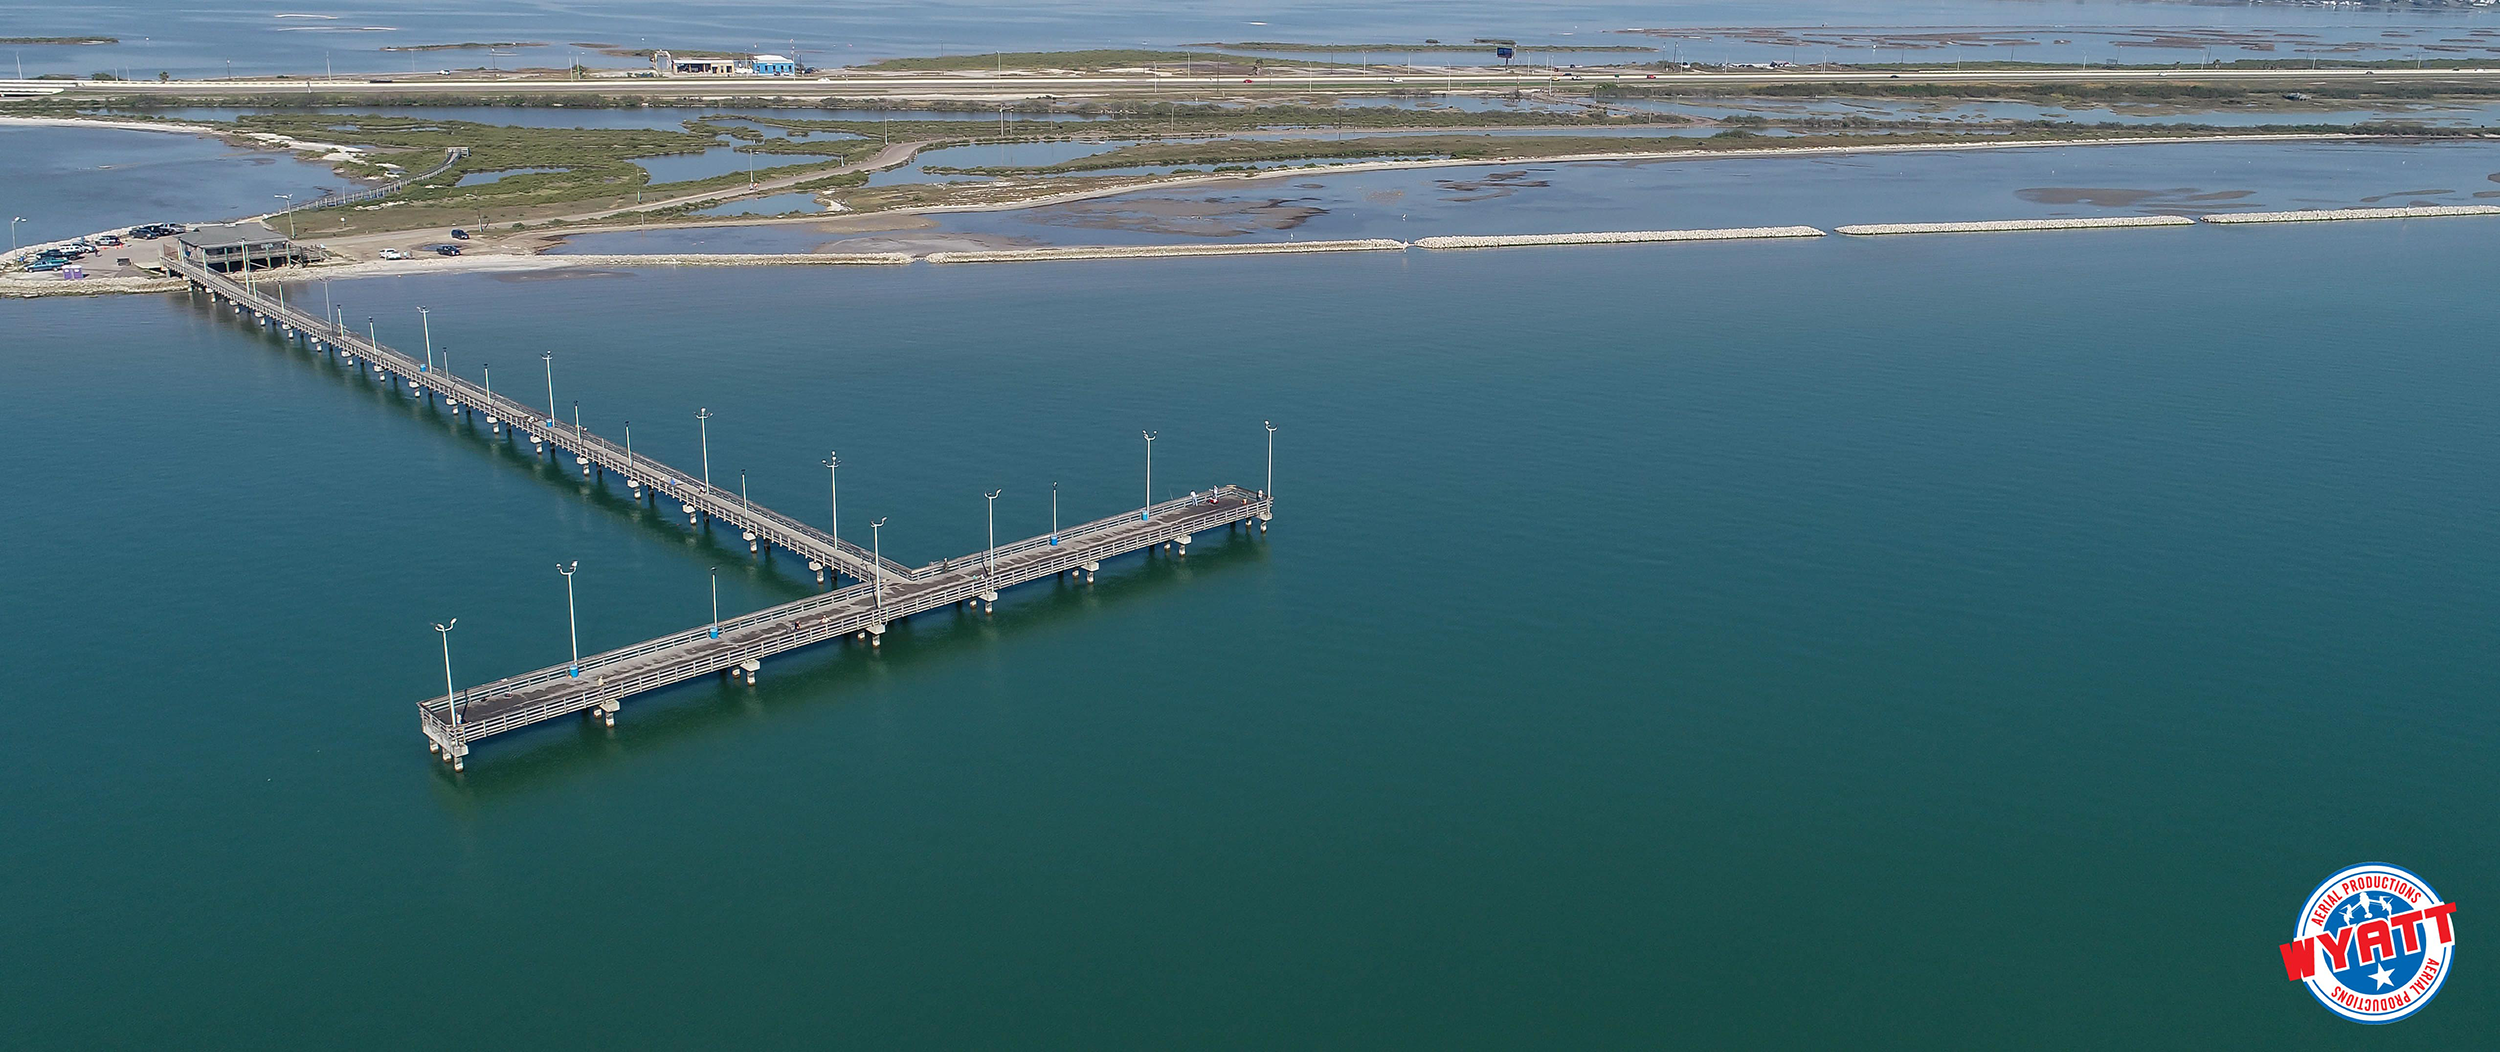 Indian Point Pier Wyatt Aerial Productions